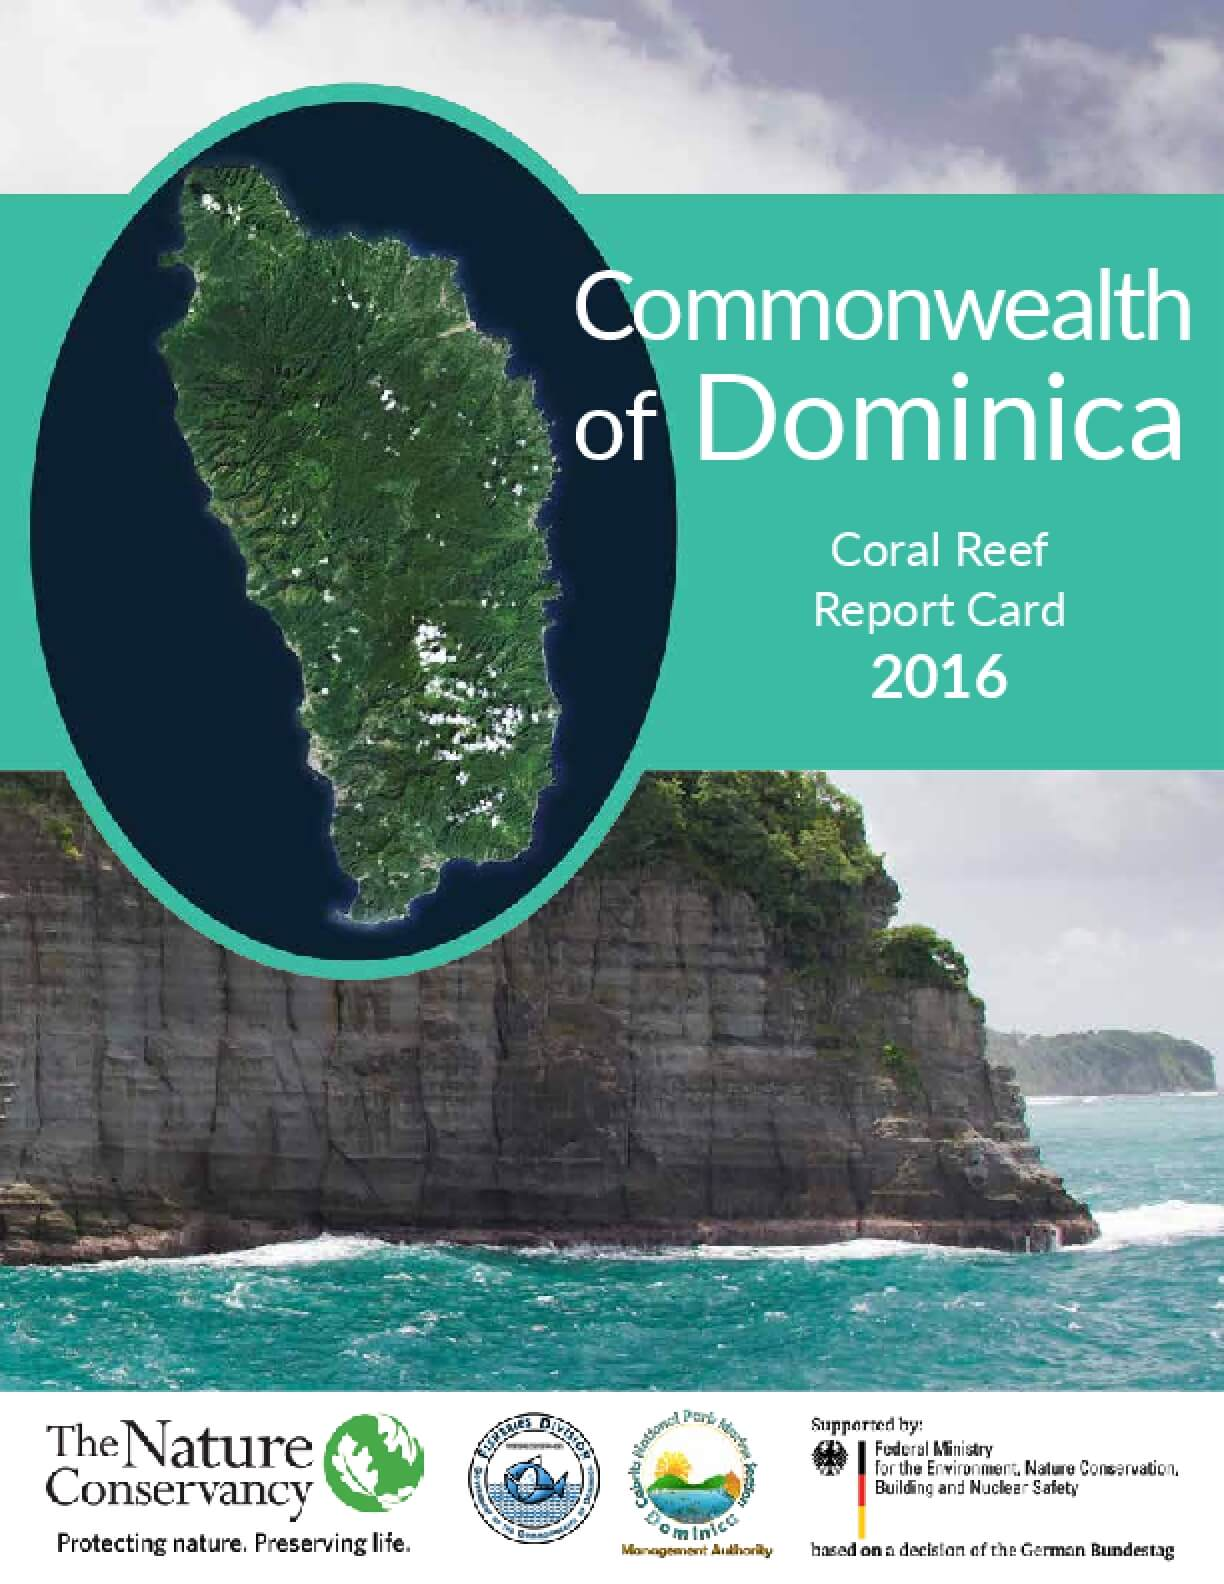 Commonwealth of Dominica: Coral Reef Report Card 2016